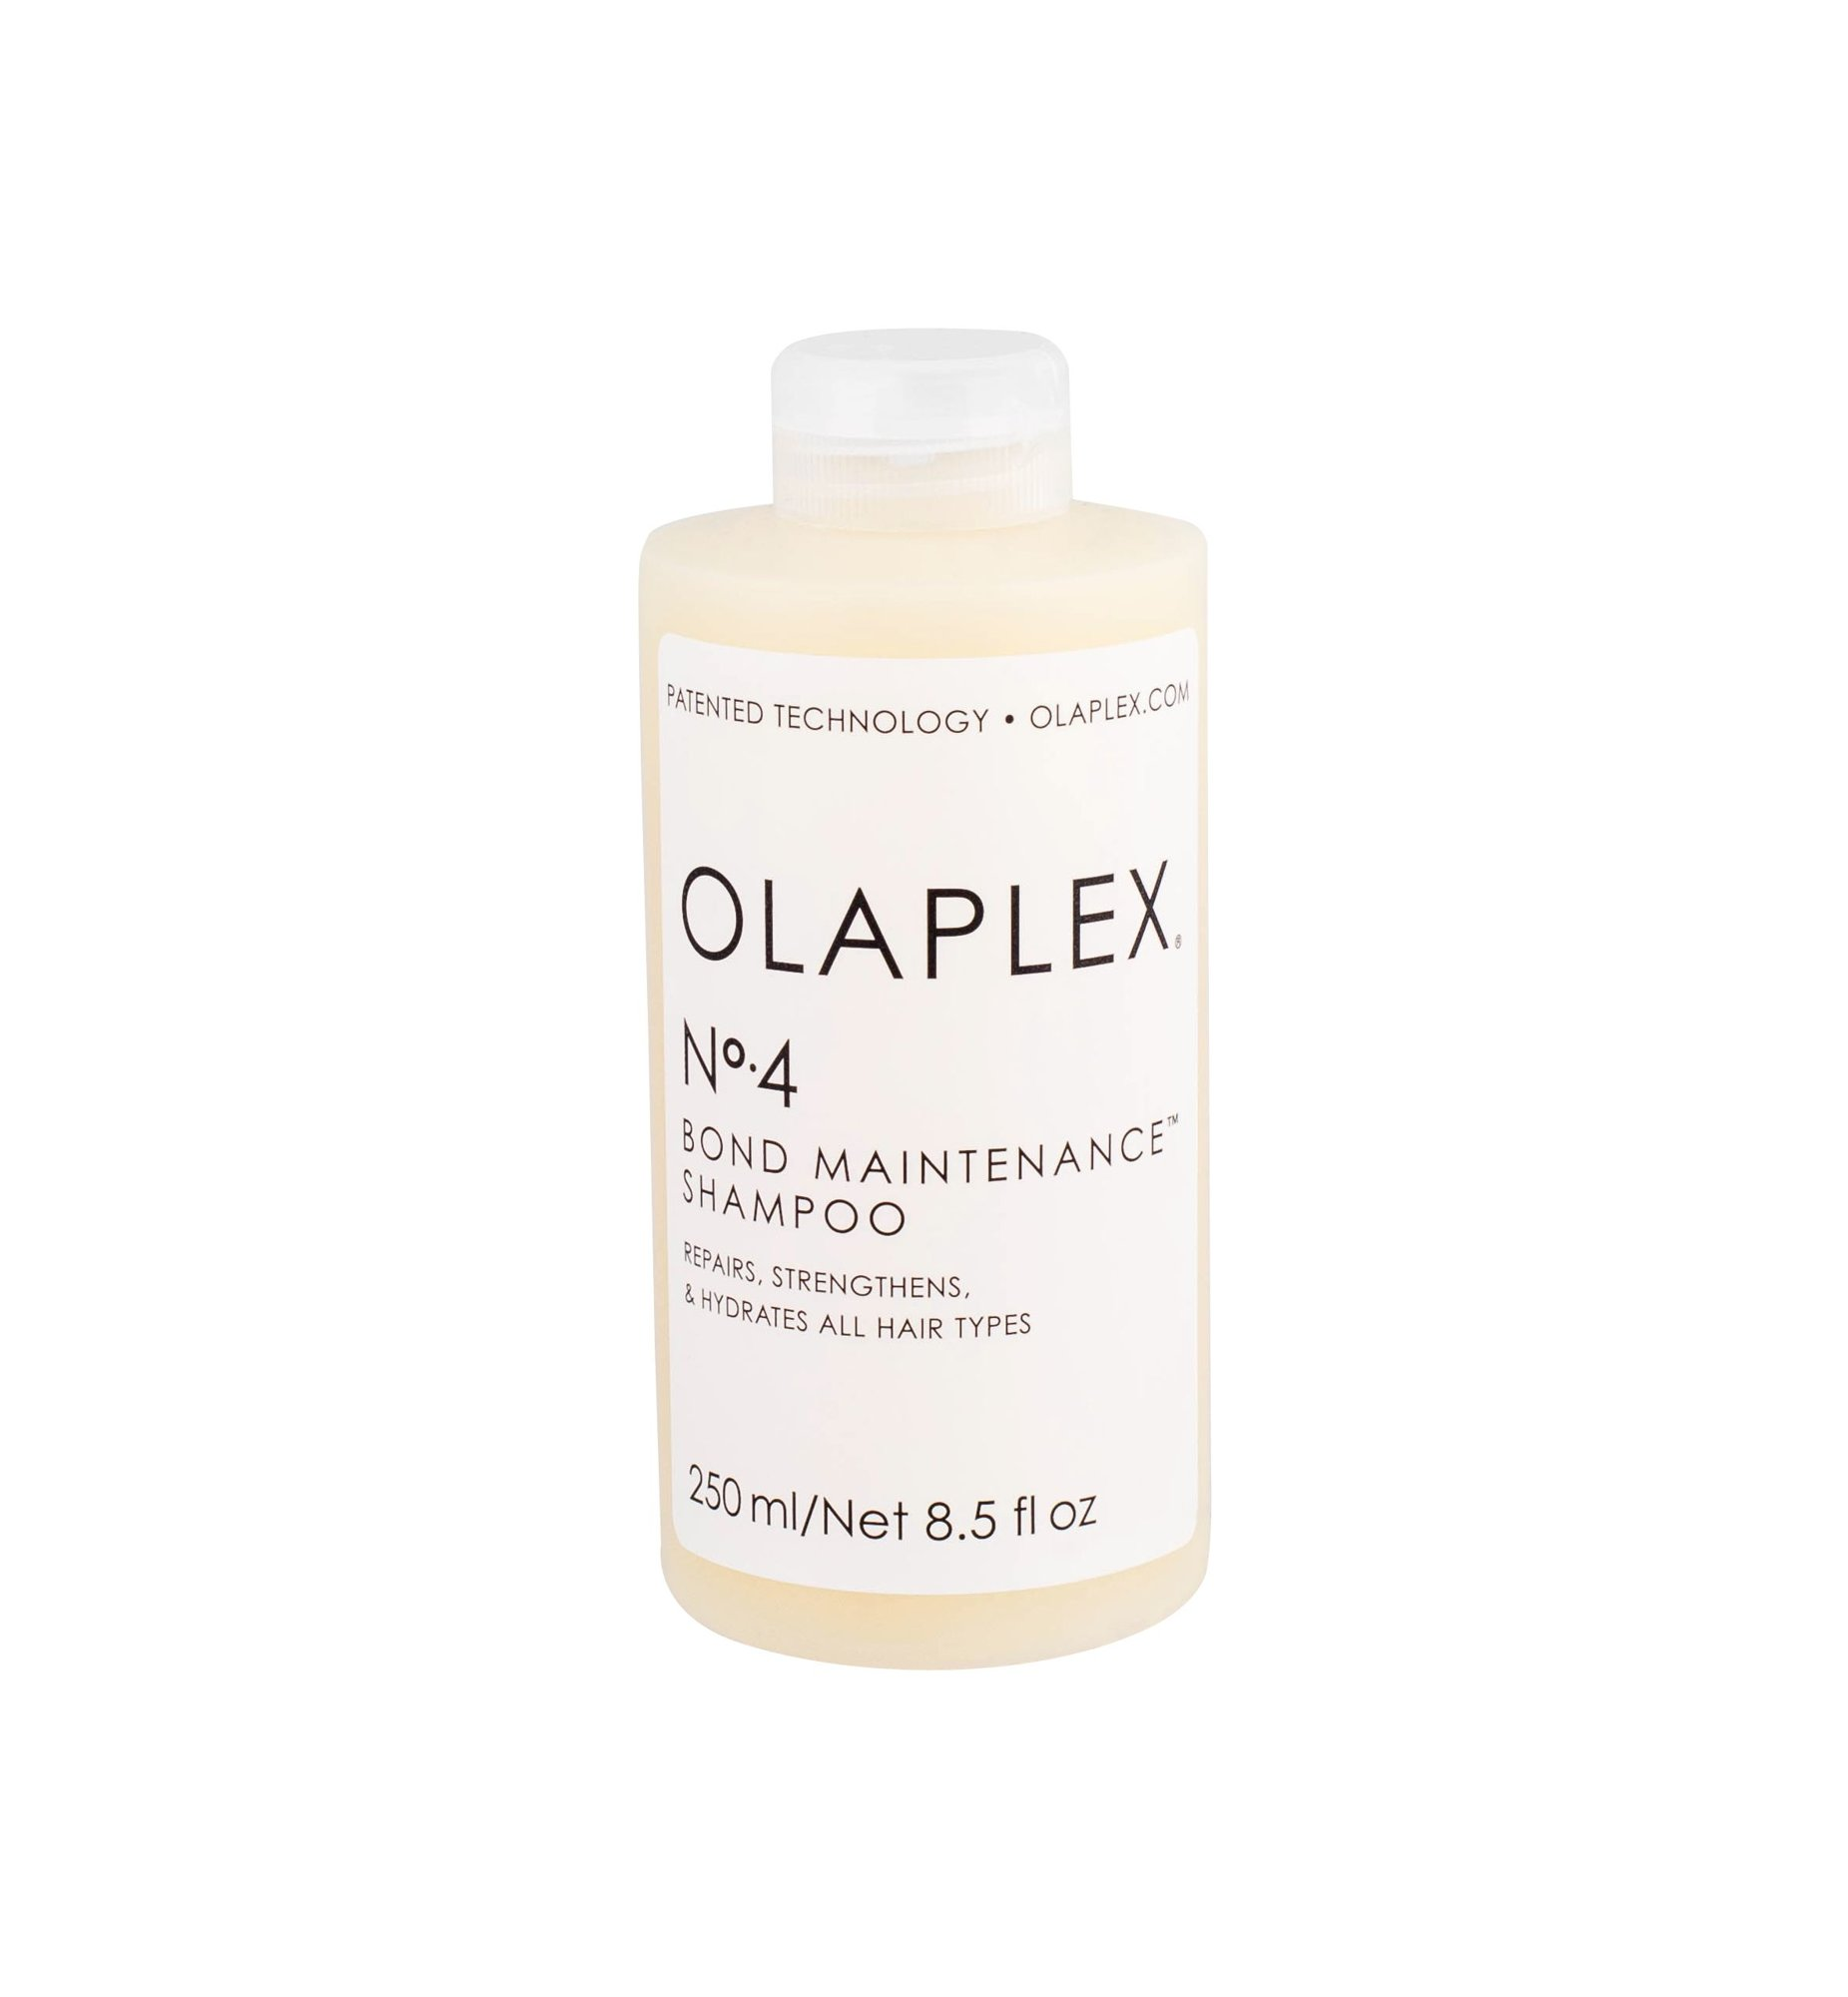 Olaplex Bond Maintenance Shampoo 250ml